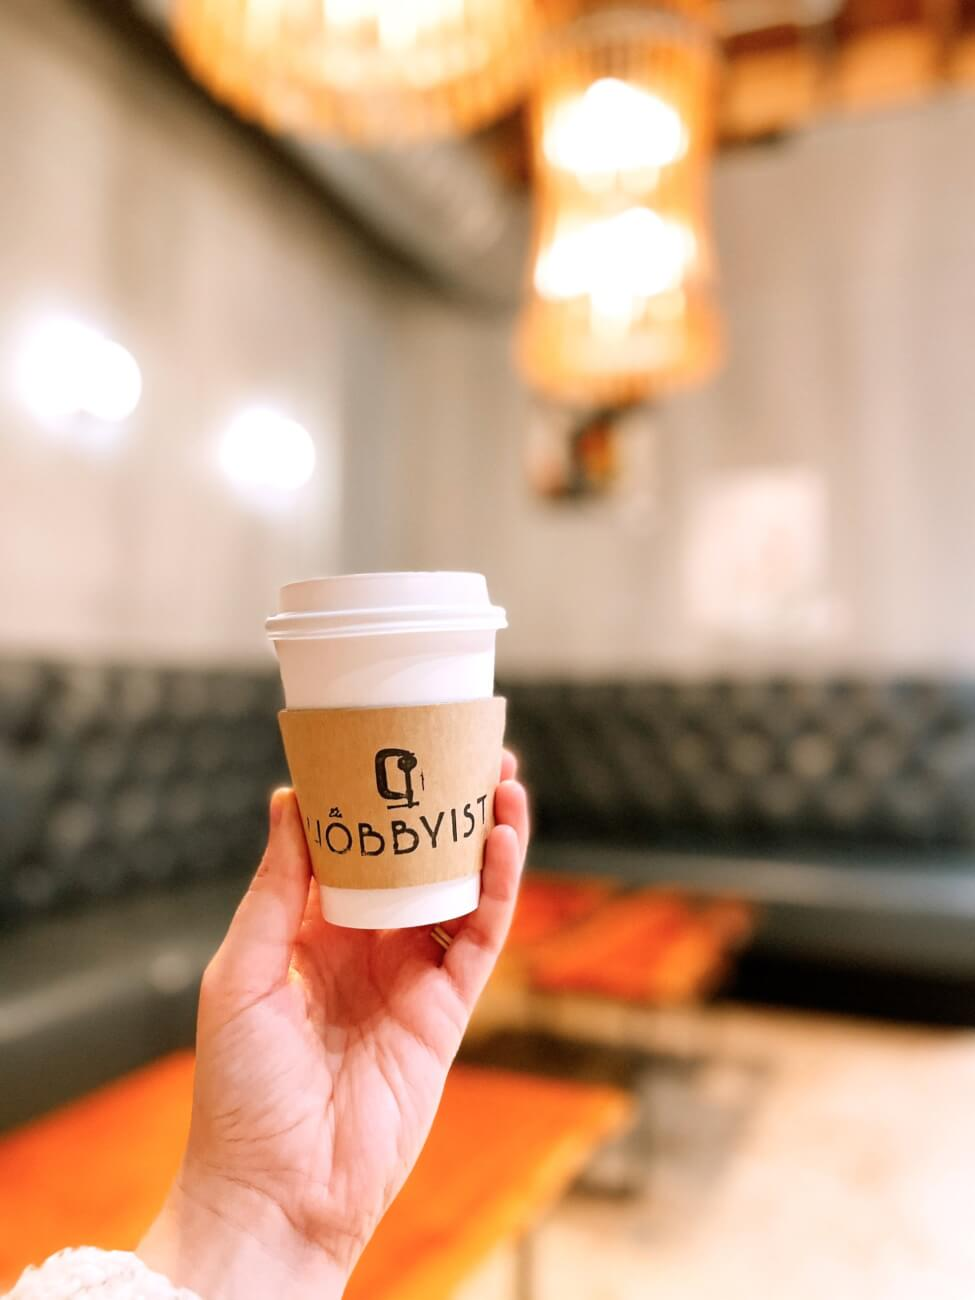 While Charlotte is most known for their breweries, coffee shops have increased in popularity in this diverse and creative city. From eclectic coffee shops to hole-in-the-wall neighborhood cafes, this is a guide to all of the best Charlotte coffee shops! Charlotte, North Carolina | Charlotte coffee | Charlotte NC | North Carolina coffee shops | NC coffee shops #charlottecoffee #charlottecoffeeshops #charlottenc | Hex Coffee | Not Just Coffee | Undercurrent coffee | Stablehand | Summit Coffee